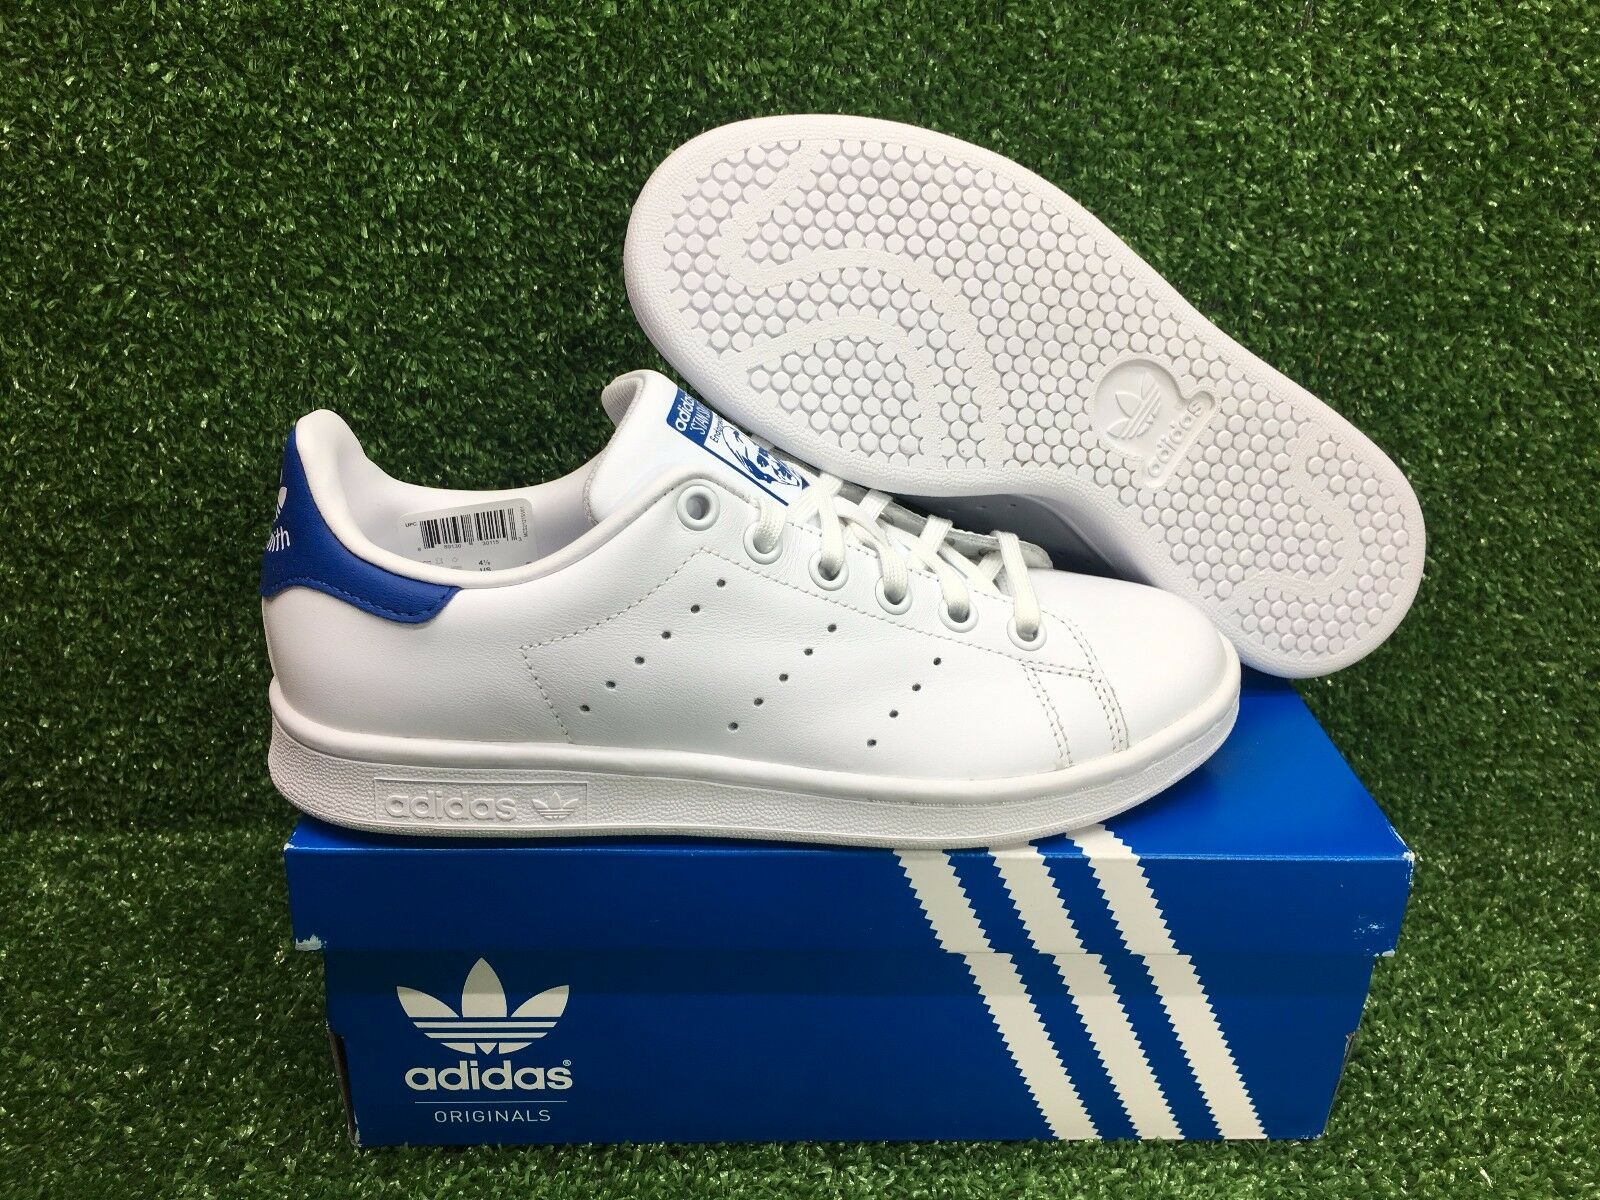 NEW ADIDAS ORIGINAL STAN SMITH J YOUTH GRADE SCHOOL WOMEN SHOES WHTE/BLUE  S74778